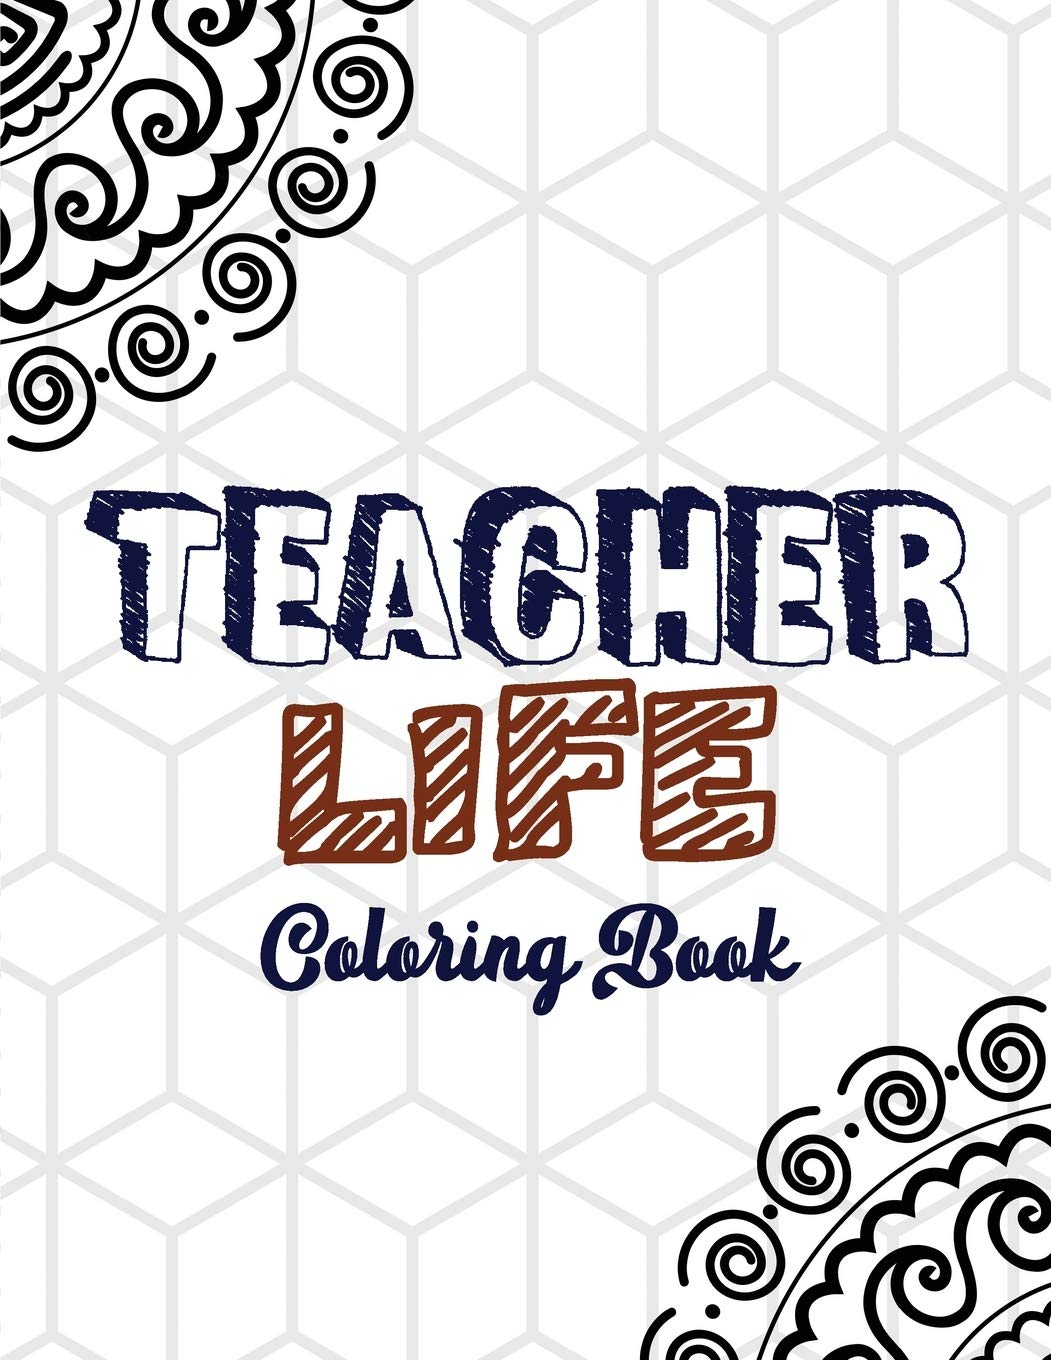 Amazon Com Teacher Life Coloring Book Teacher S Stress Releasing White Coloring Book With Inspirational Quotes Teacher Appreciation And Motivational Coloring Teacher S Life Teacher Christmas Gift Book 9781704036069 Studio Voloxx Books